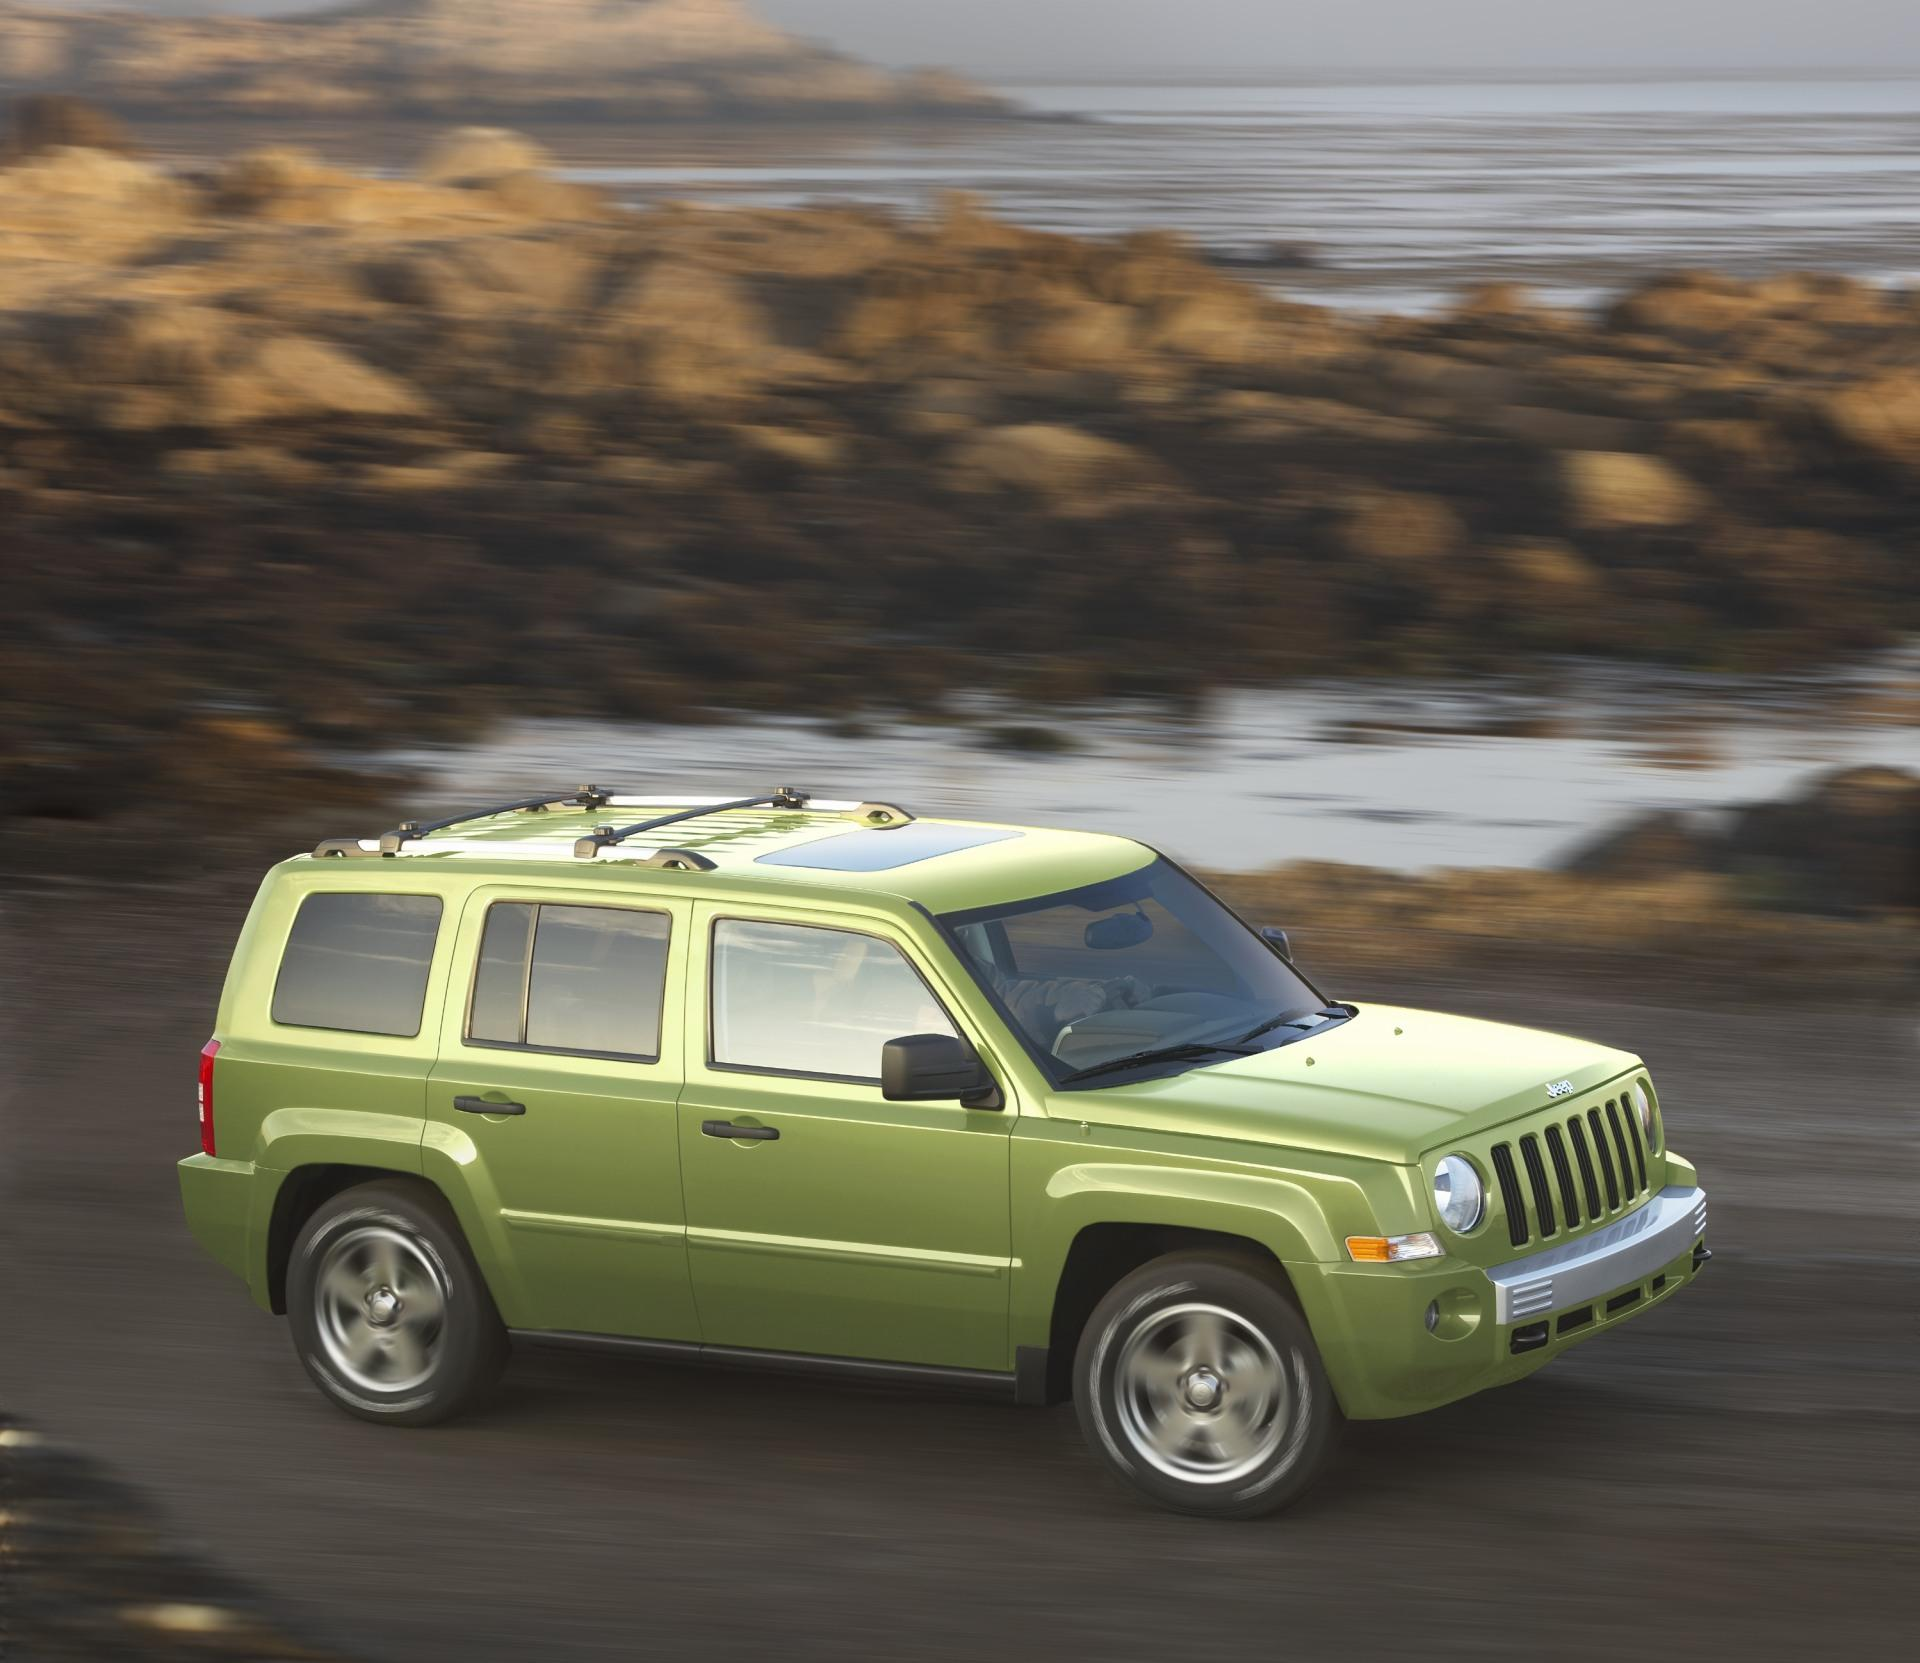 2010 Jeep Patriot Technical Specifications And Data